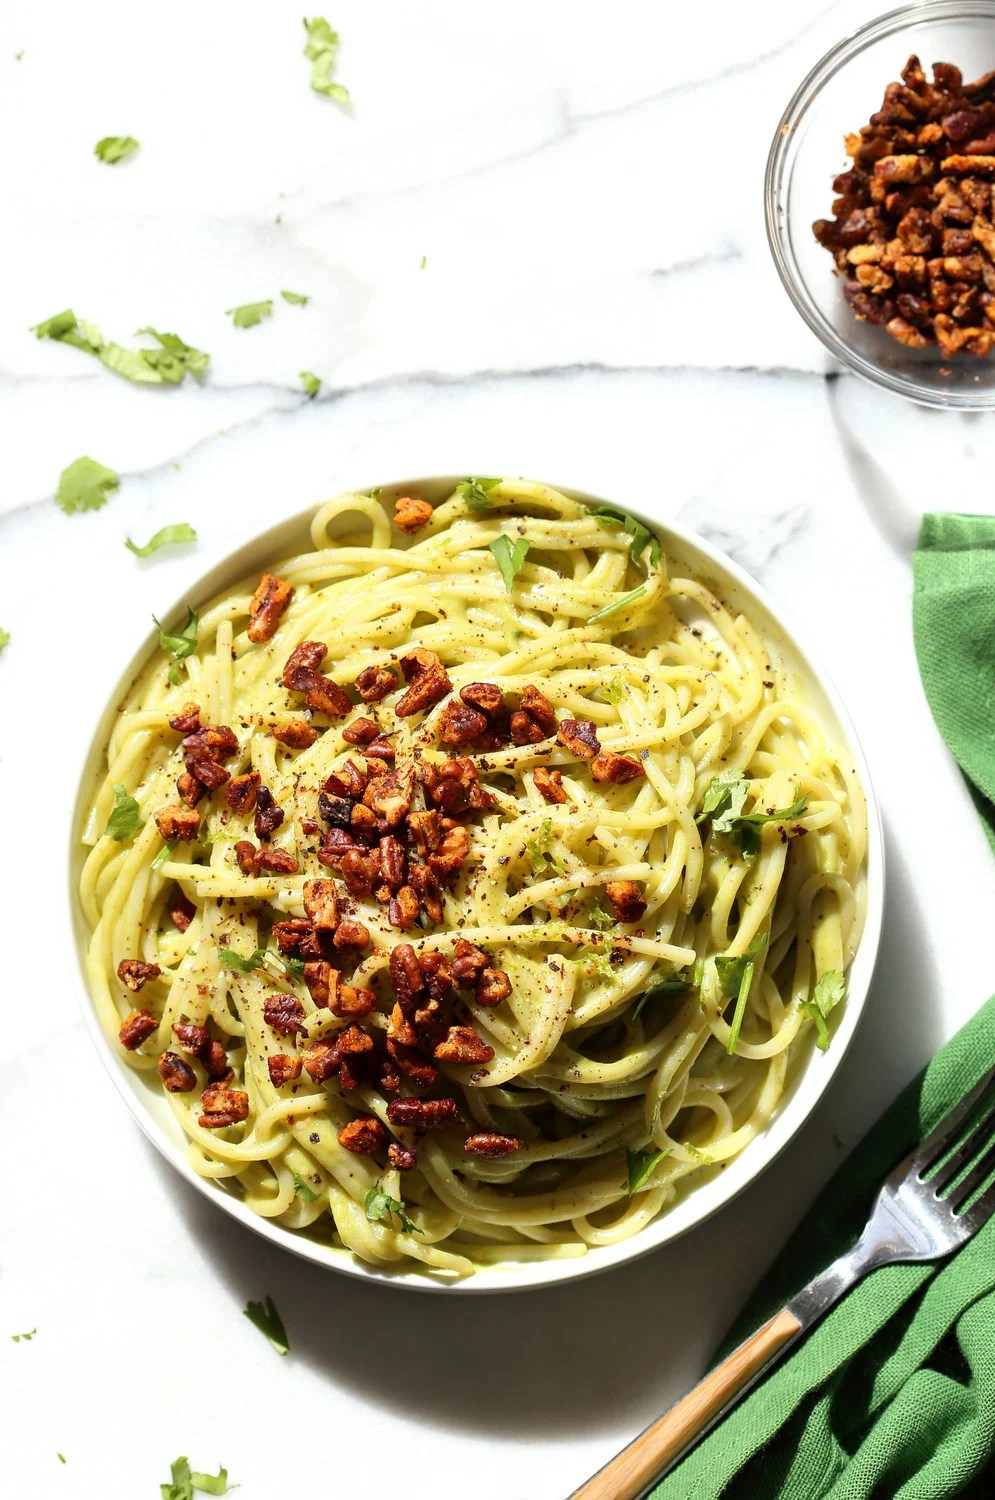 Avocado Pasta with Smoky Pecans. This 20 Minute Creamy Avocado Basil Sauce is great over spaghetti or zoodles. Serve with smoky spicy pecans for amazing flavor. #Vegan #Soyfree #Recipe. Can be #nutfree.#veganricha   VeganRicha.com